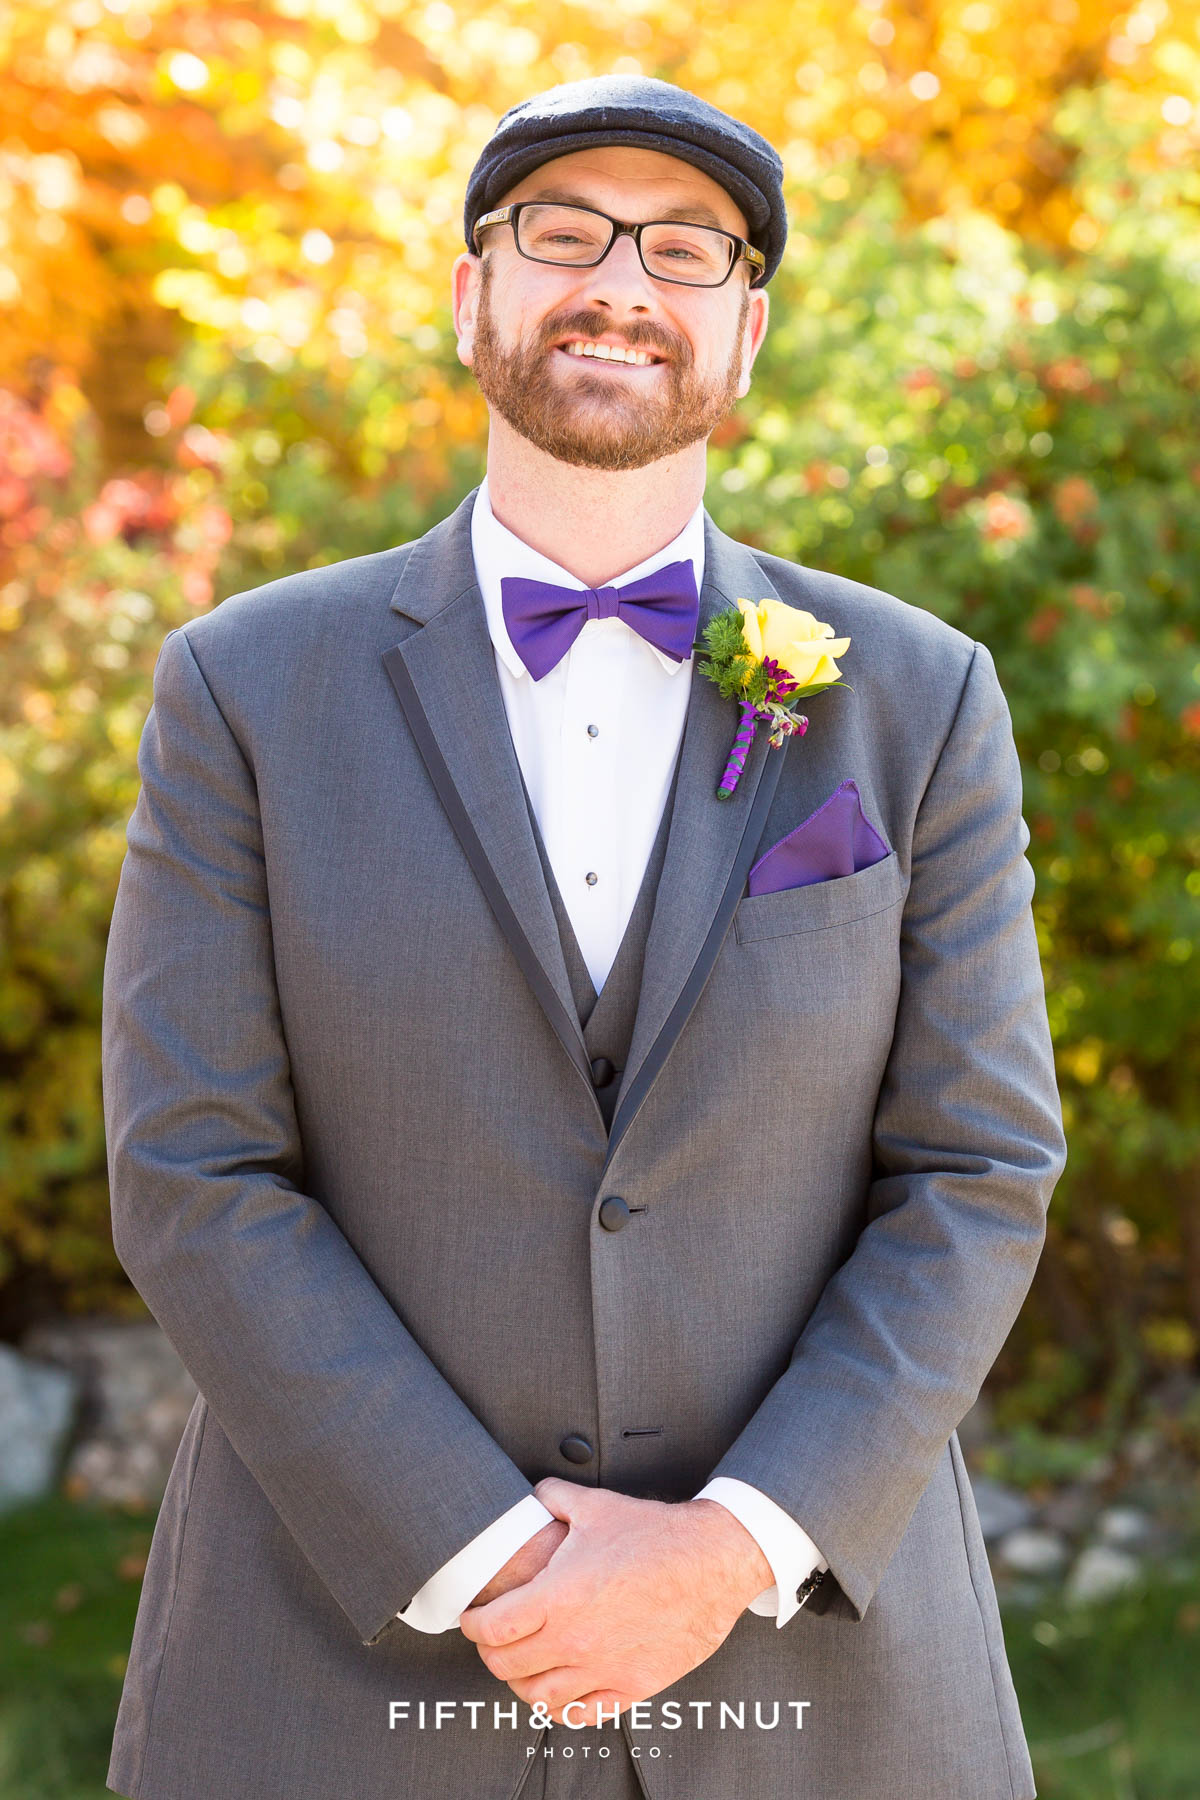 Groom portrait in front of fall foliage for a Bright fall wedding at the Grove by Reno Wedding Photographer